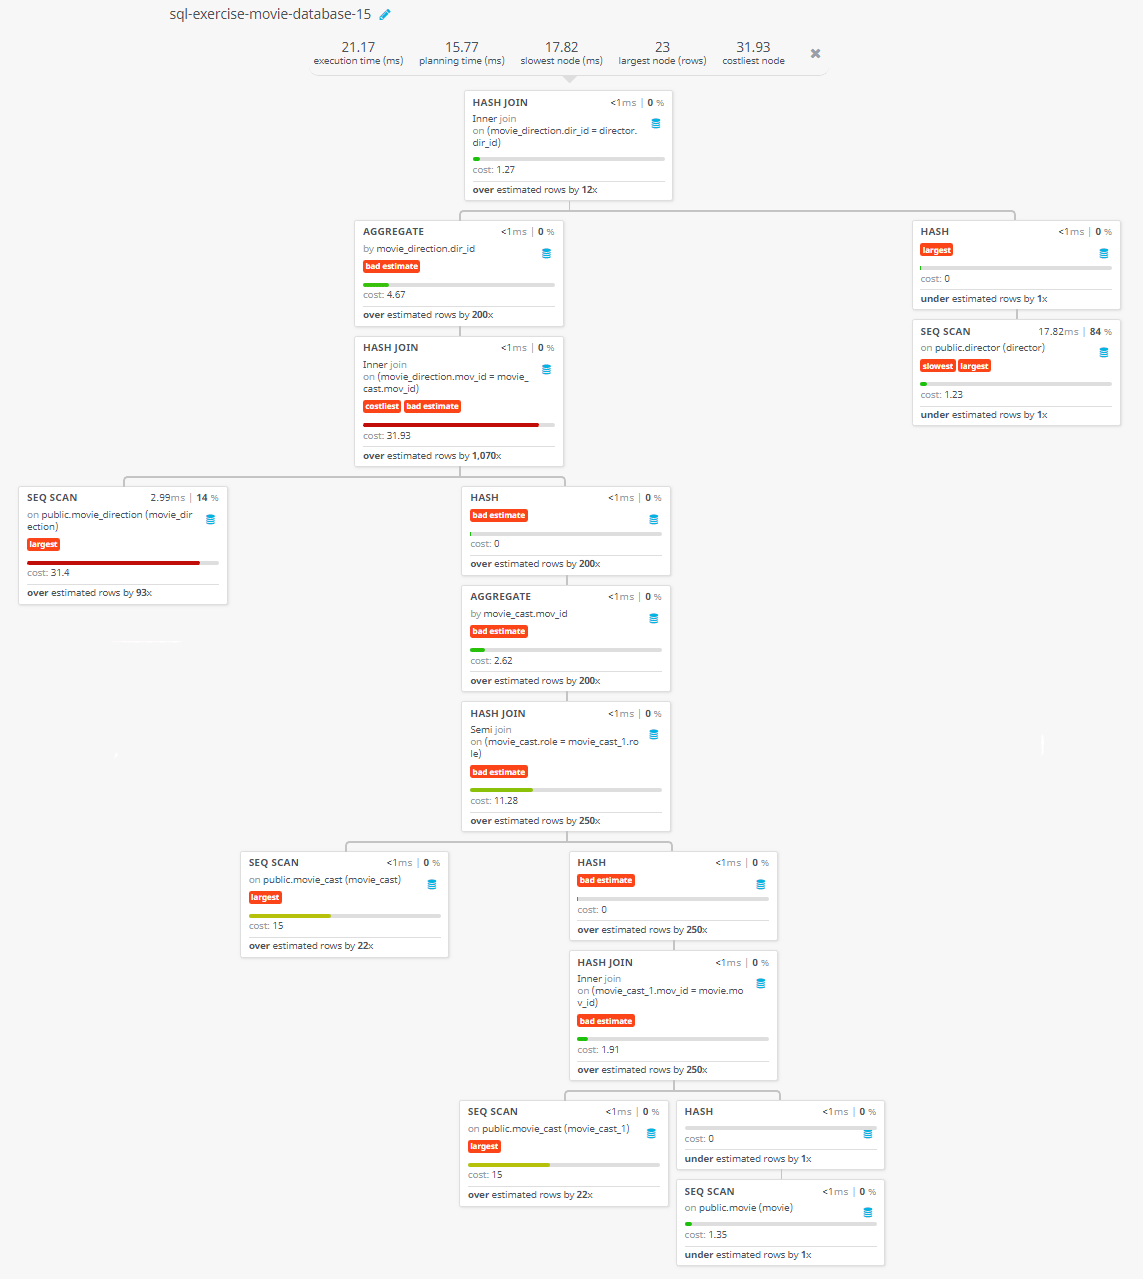 Query visualization of Find the name of the director who directed a movie that casted a role for 'Eyes Wide Shut' - Cost